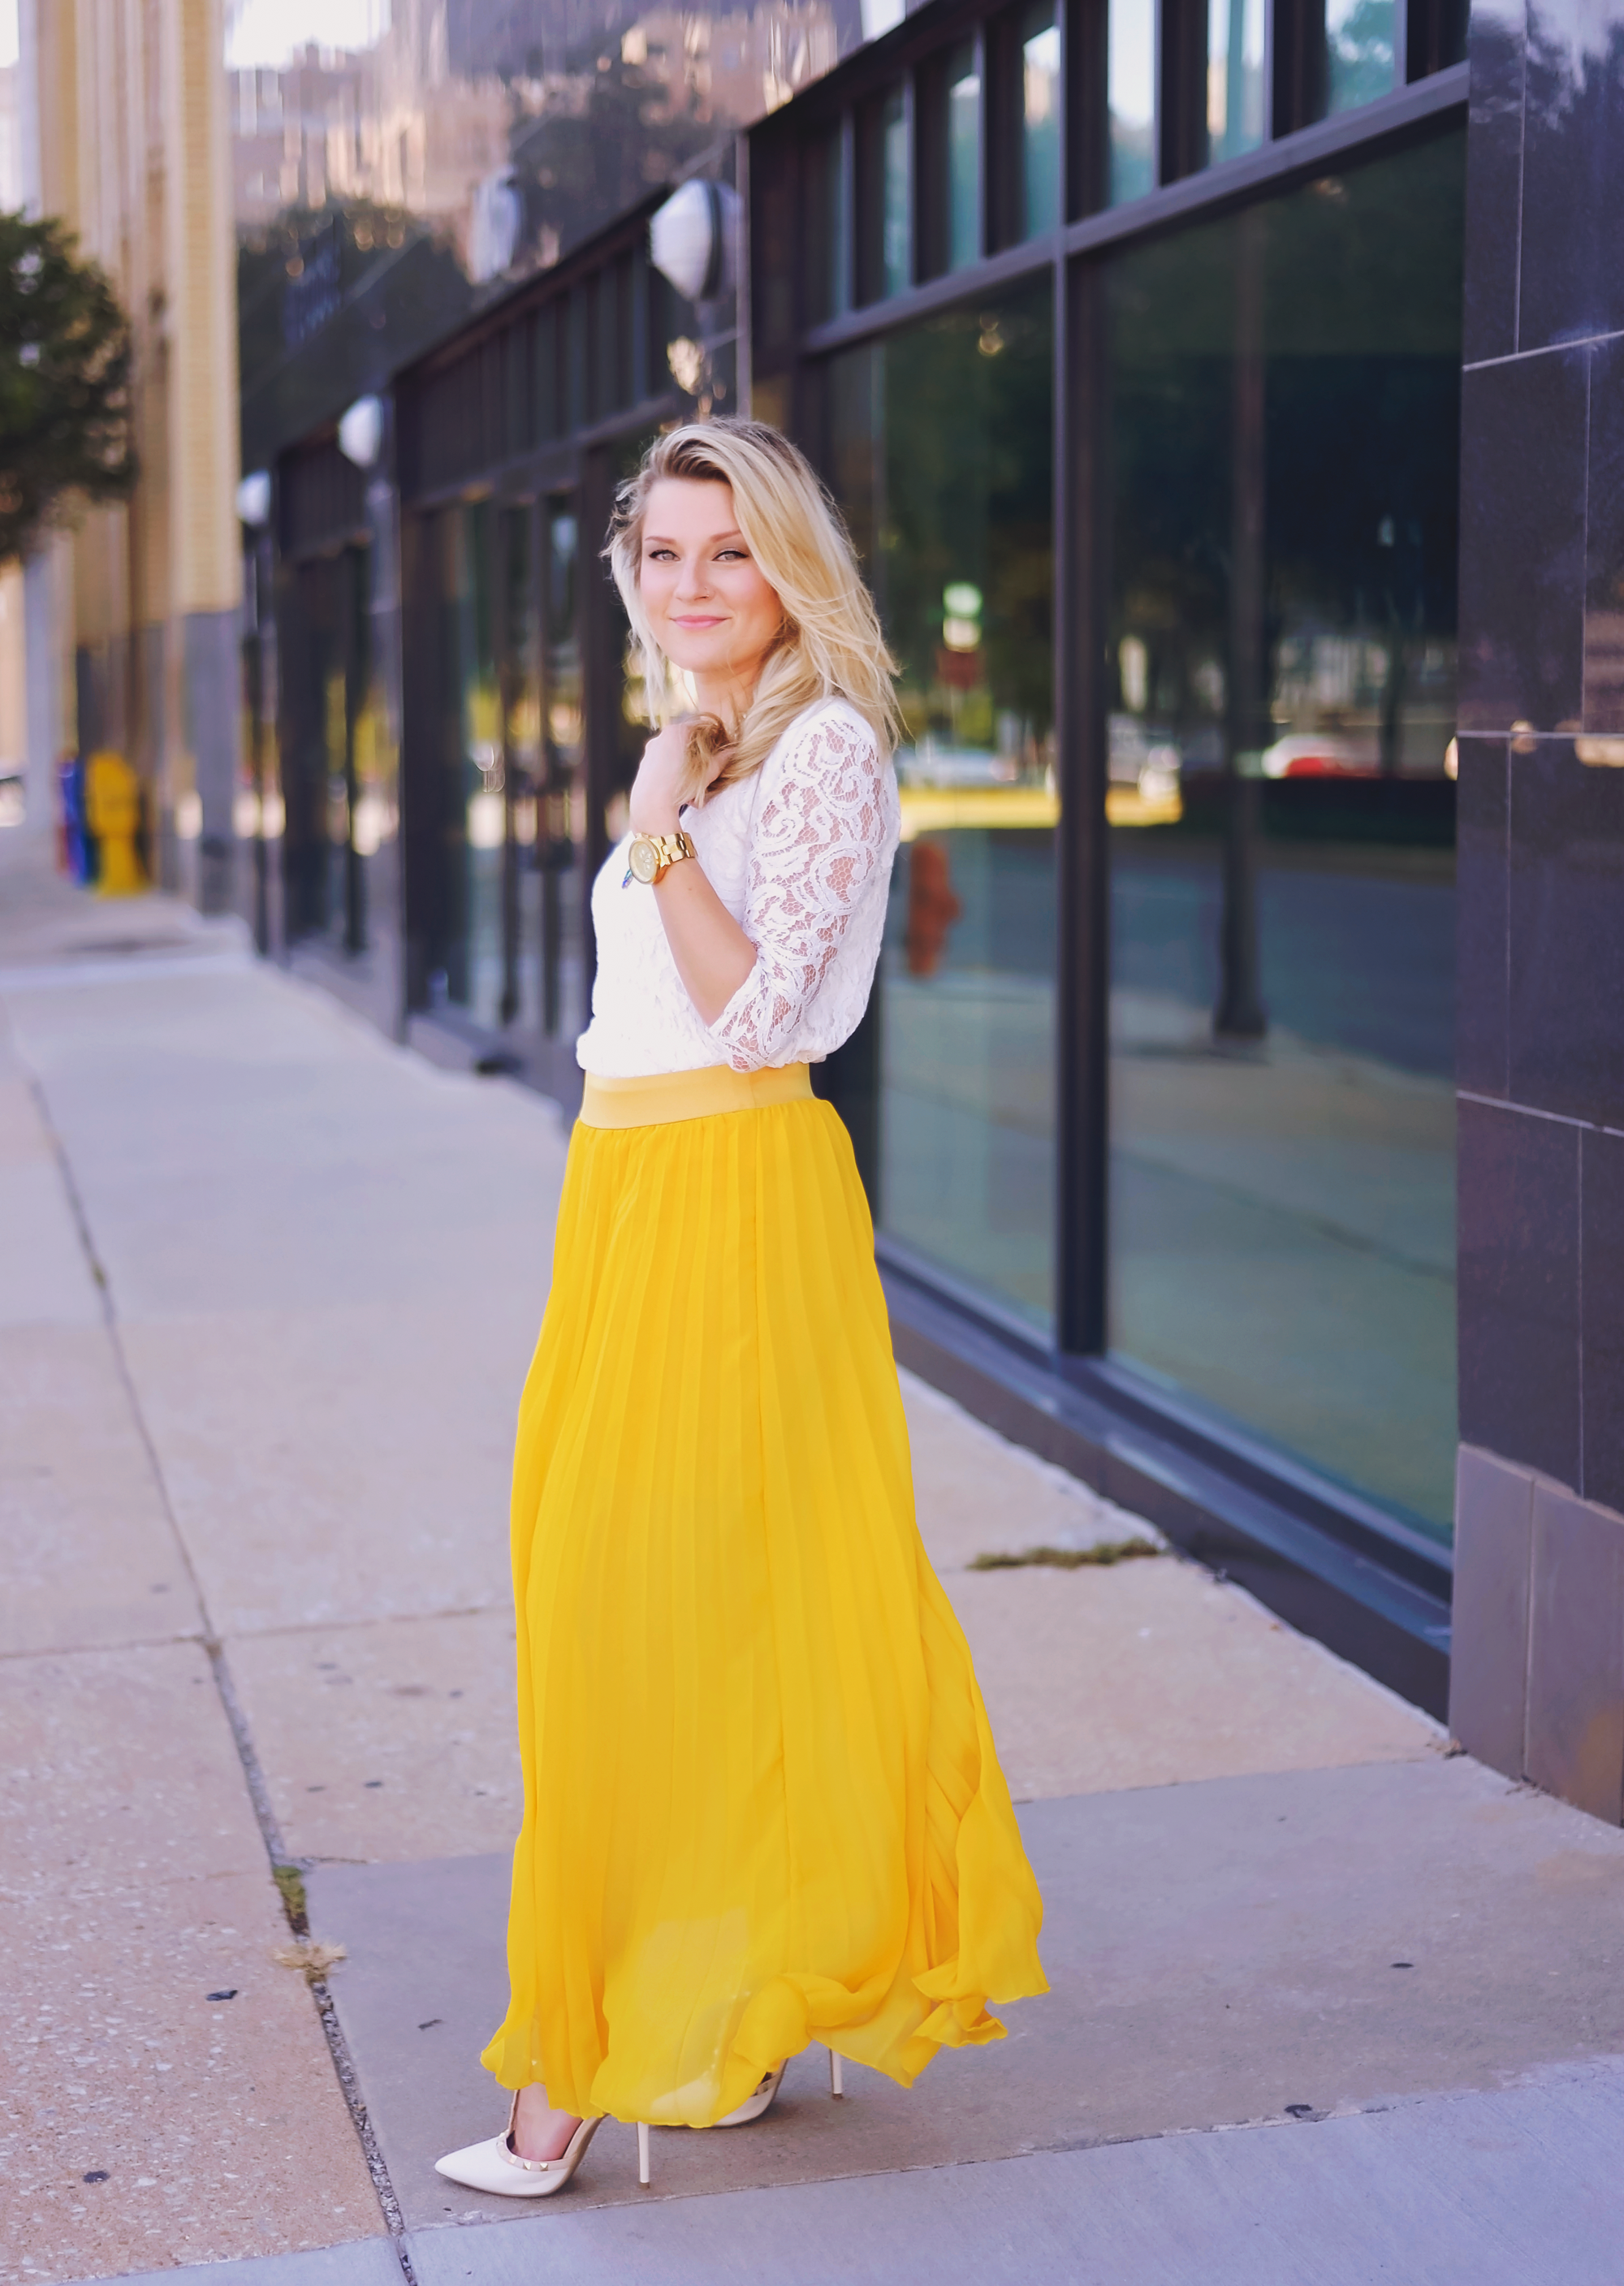 Yellow Pleated Maxi Skirt { The Chic Blonde } #OOTD